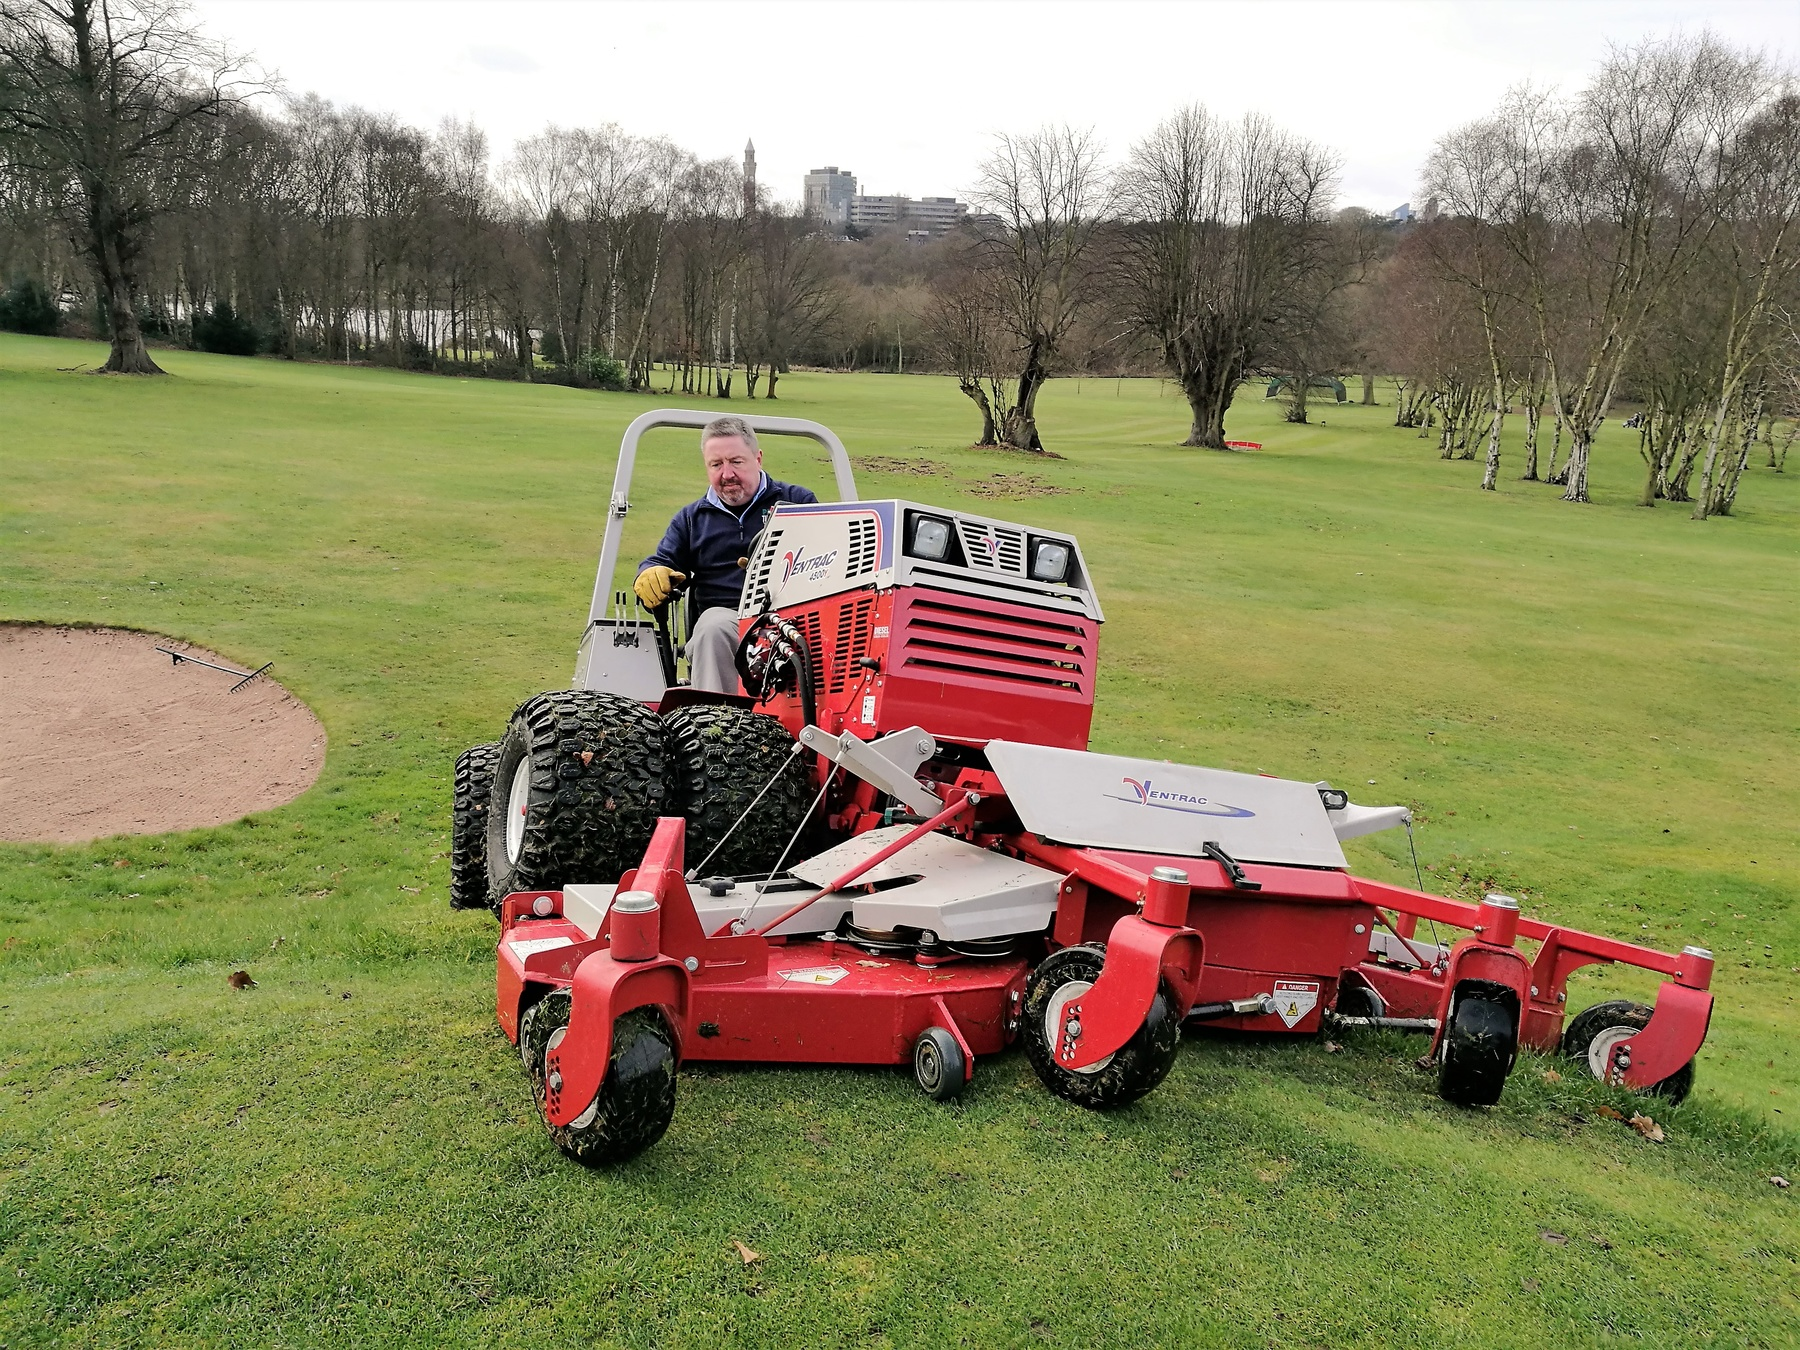 The Ventrac with contour deck proved equal to the slopes and undulations at this golf course in the West Midlands